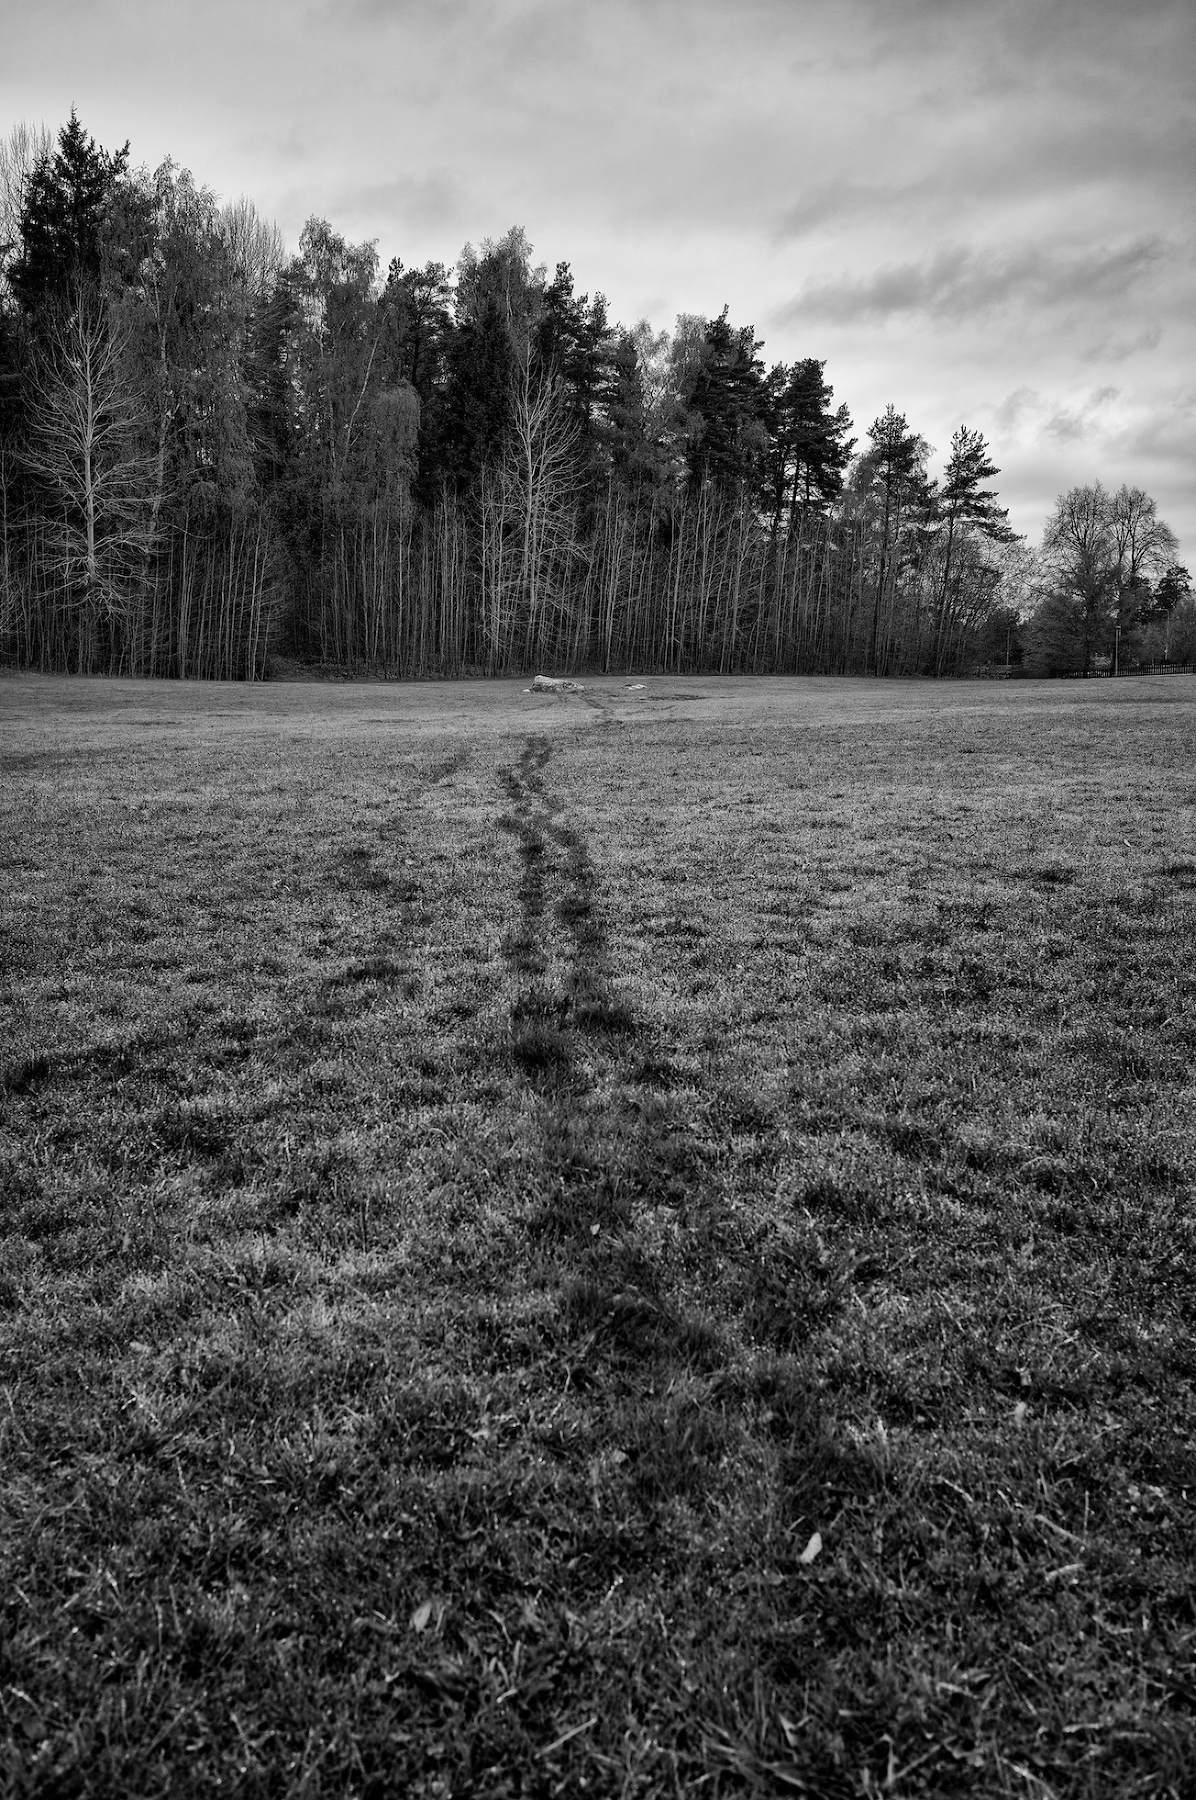 untitled_2014-05-08_18-29-34_L1001441_Copyright-Max-Dahlstrand(pp_w1196_h1800)